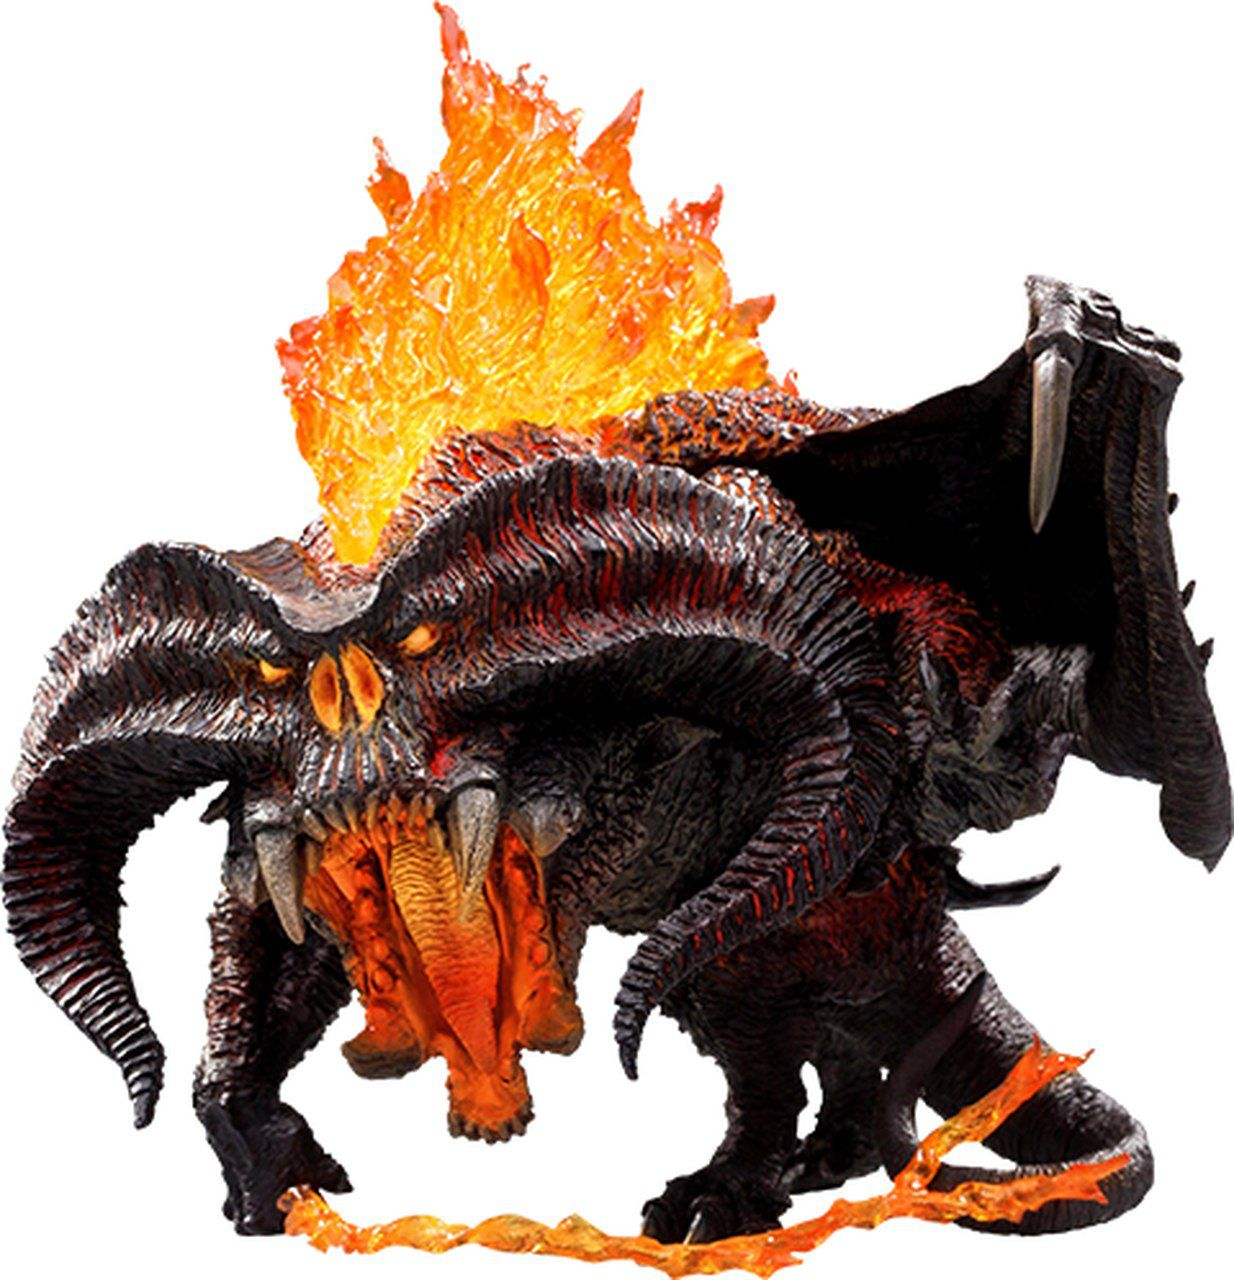 Action Figure Balrog: O Senhor dos Anéis (The Lord of the Rings) Defo-Real Series - Star Ace